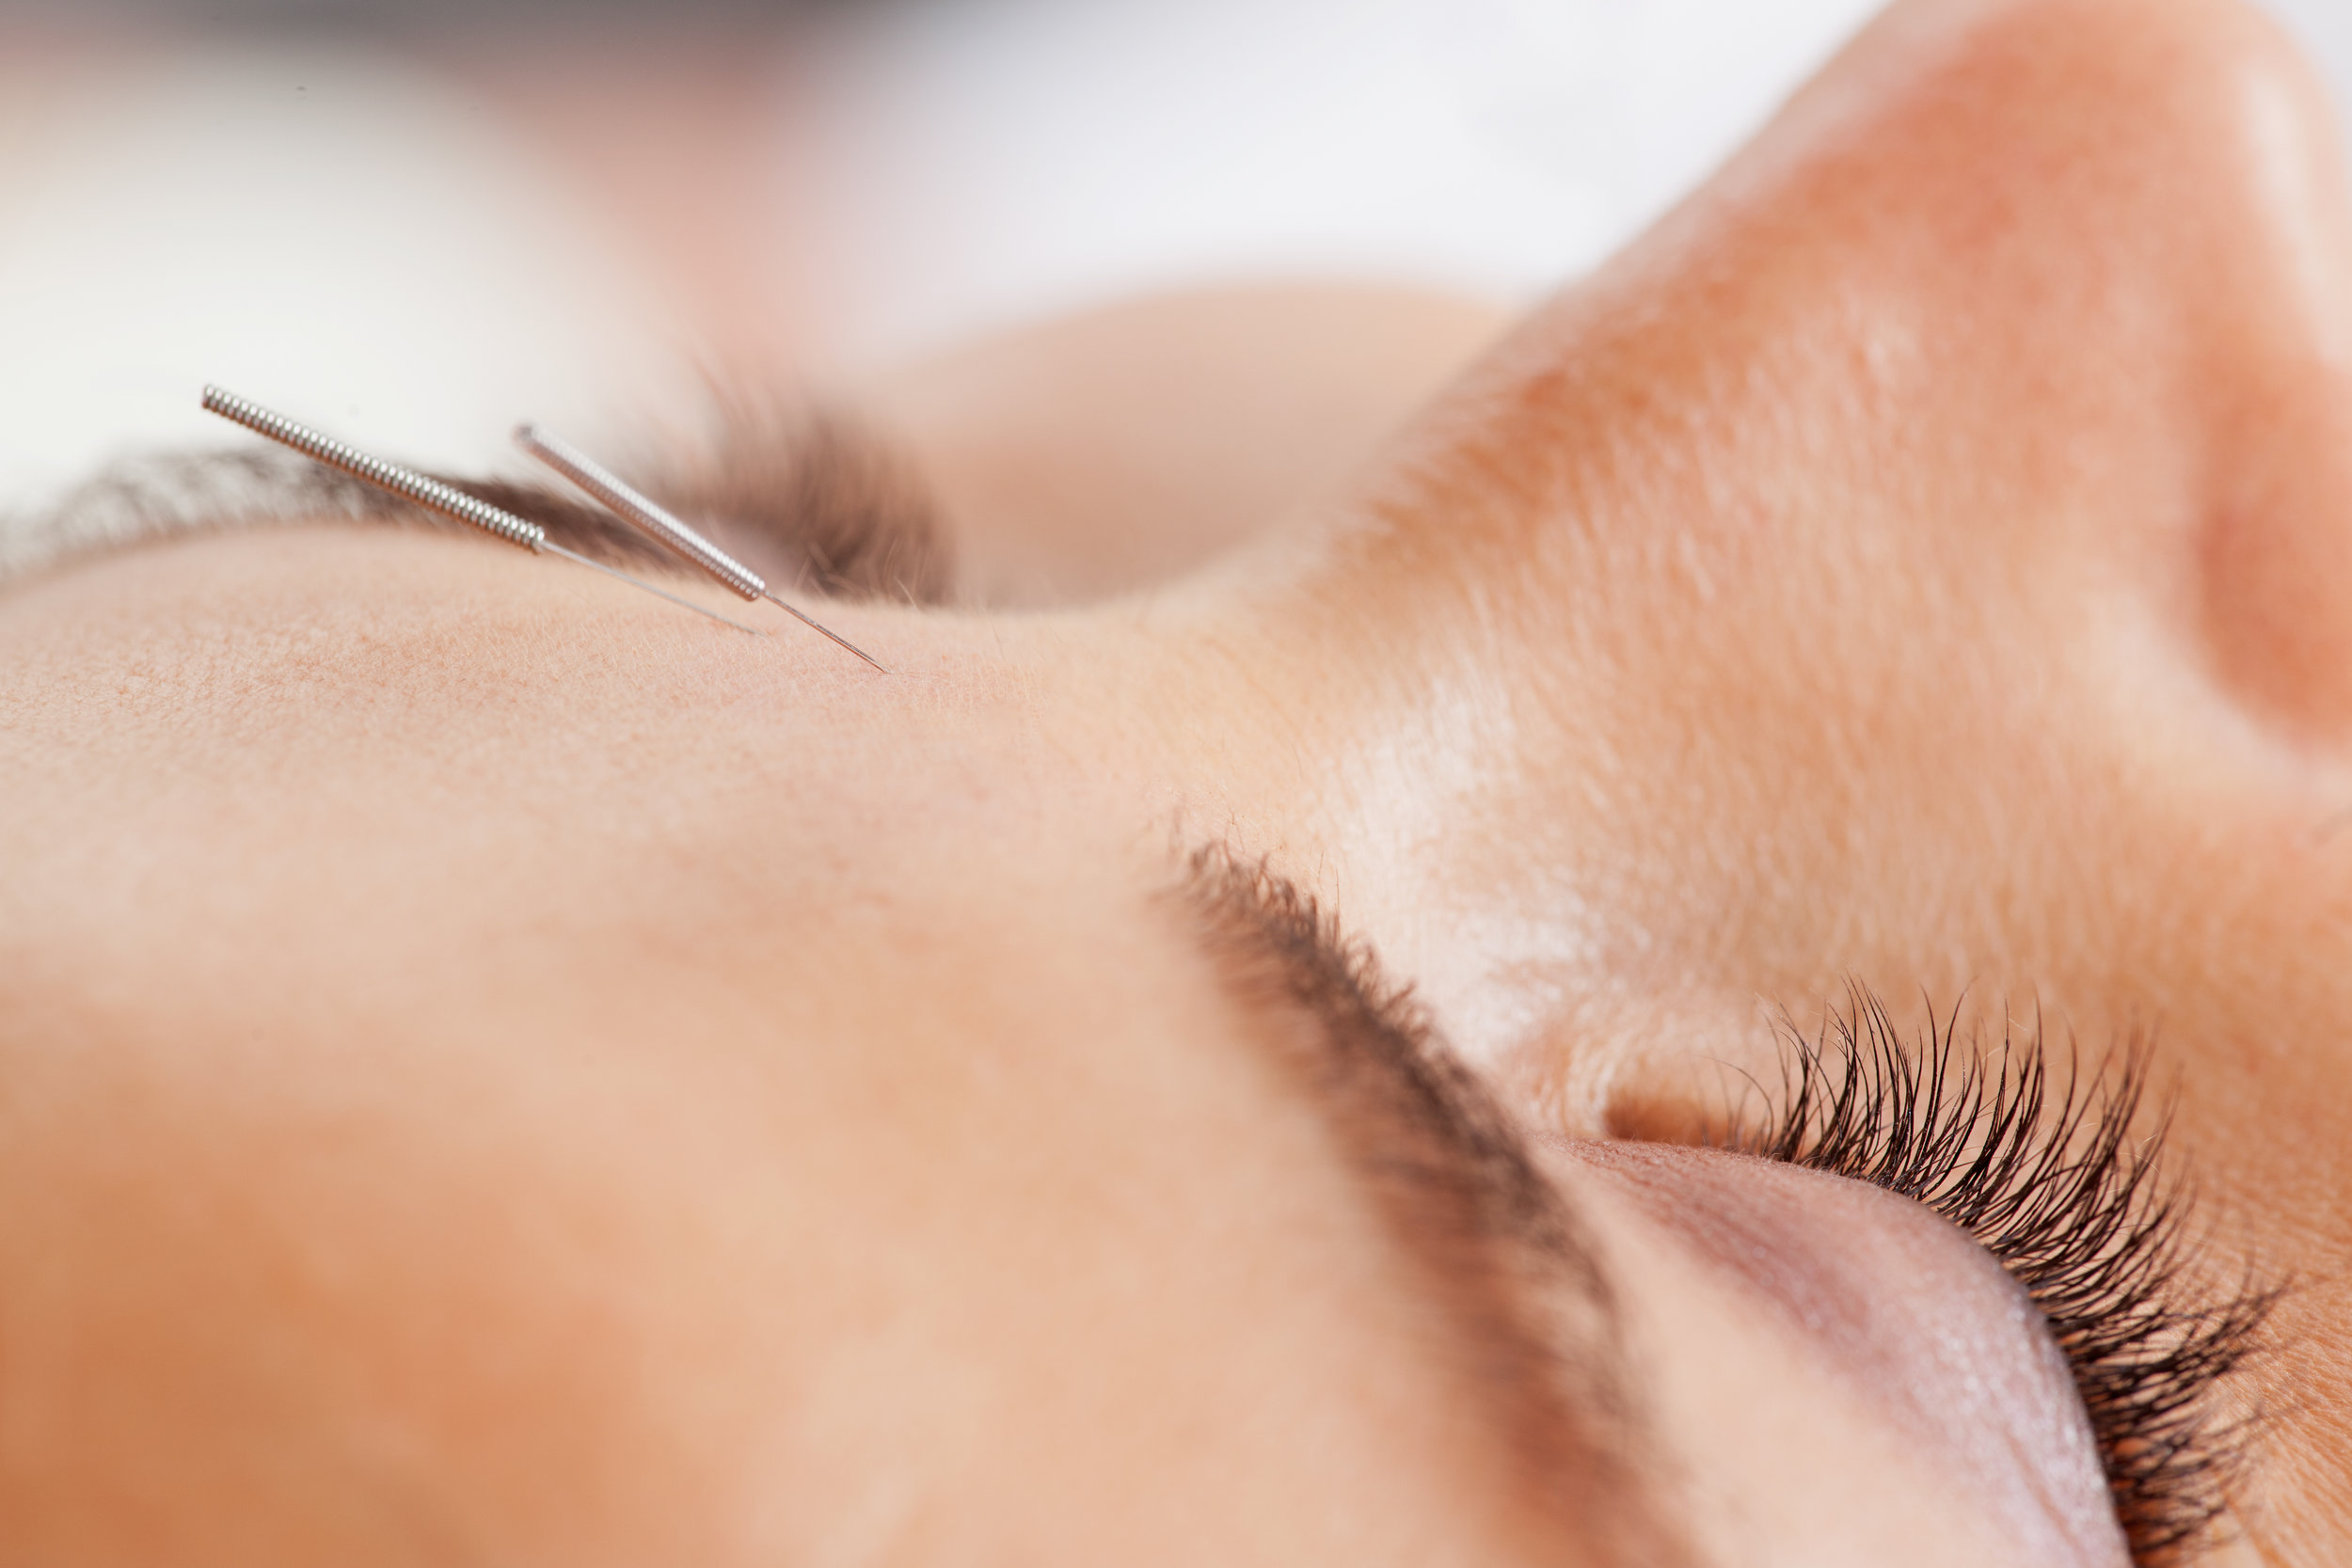 Cosmetic Acupuncture - Take care of your inner, spiritual beauty. That will reflect in your face.~Dolores del Rio